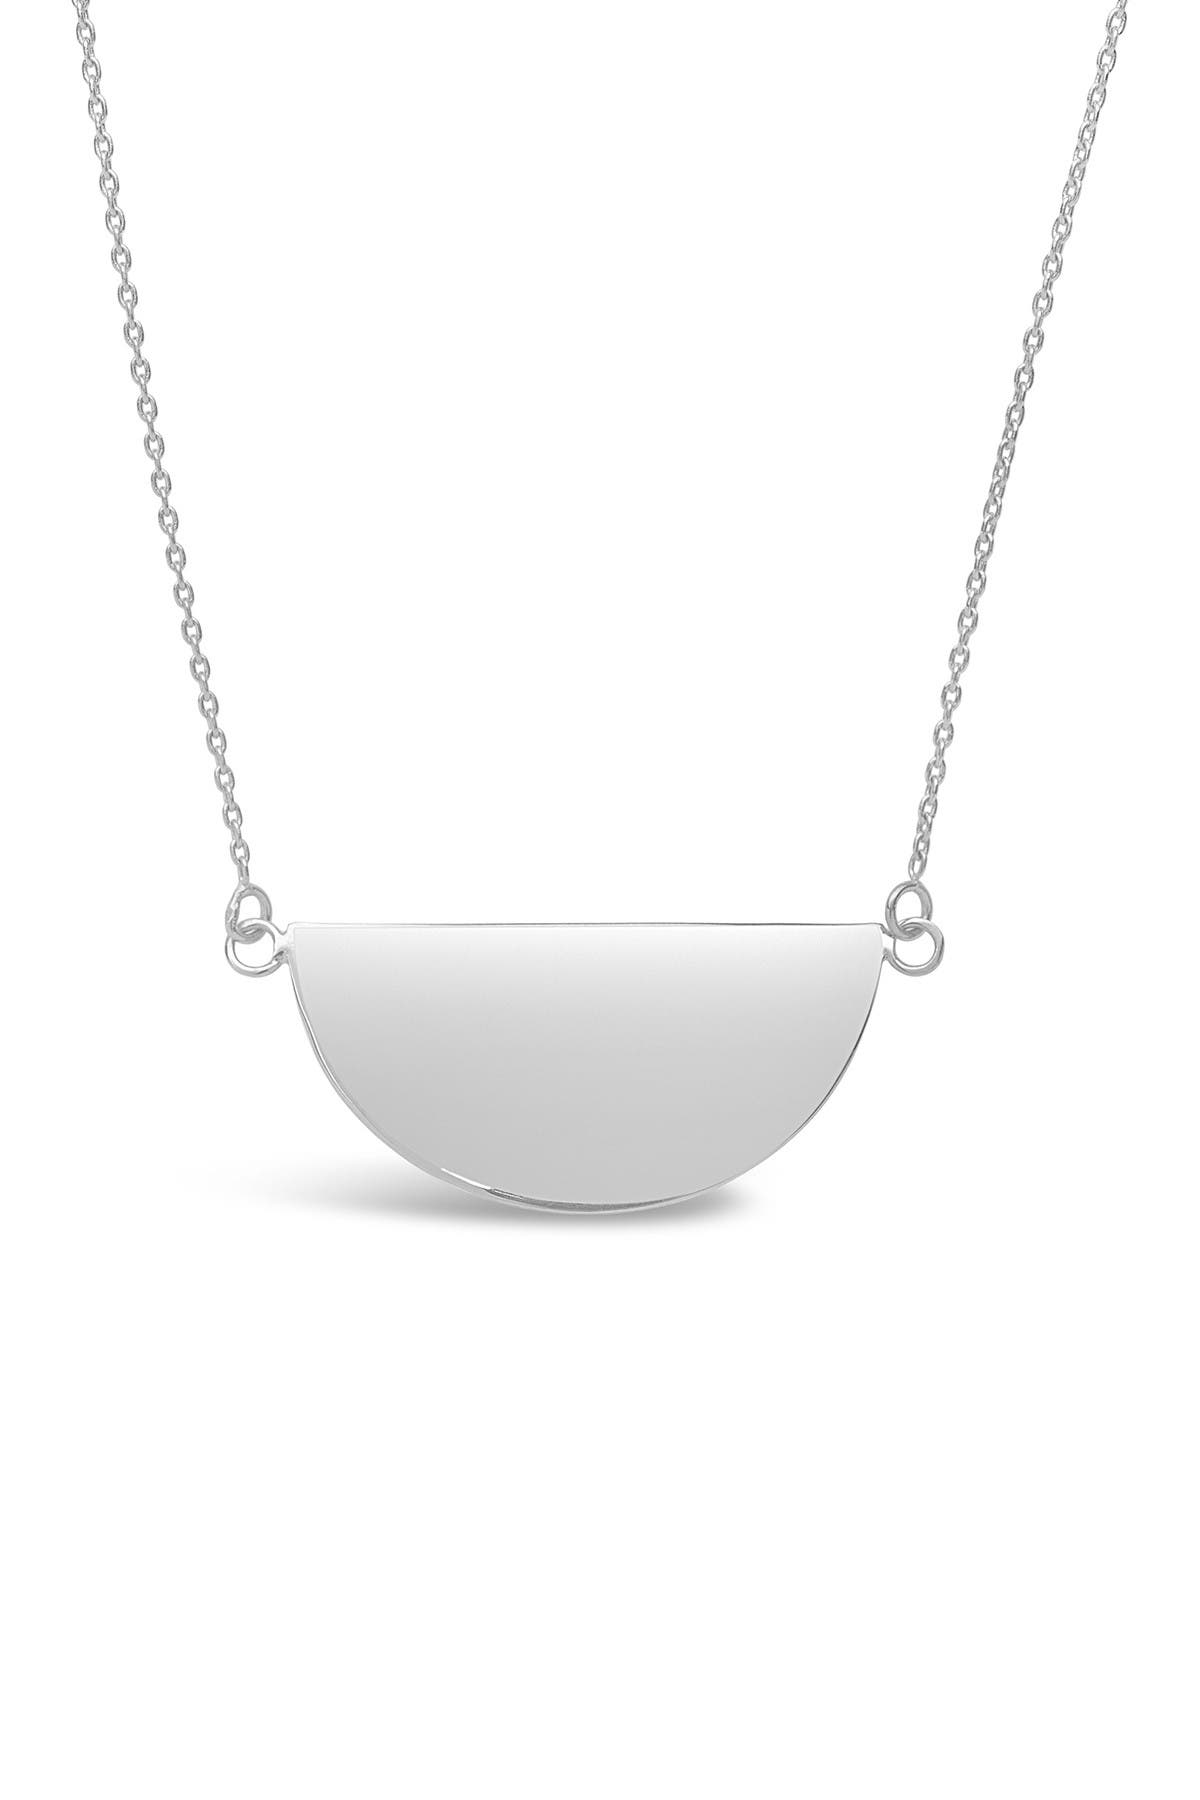 Sterling Forever Sterling Silver Half Circle Pendant Necklace